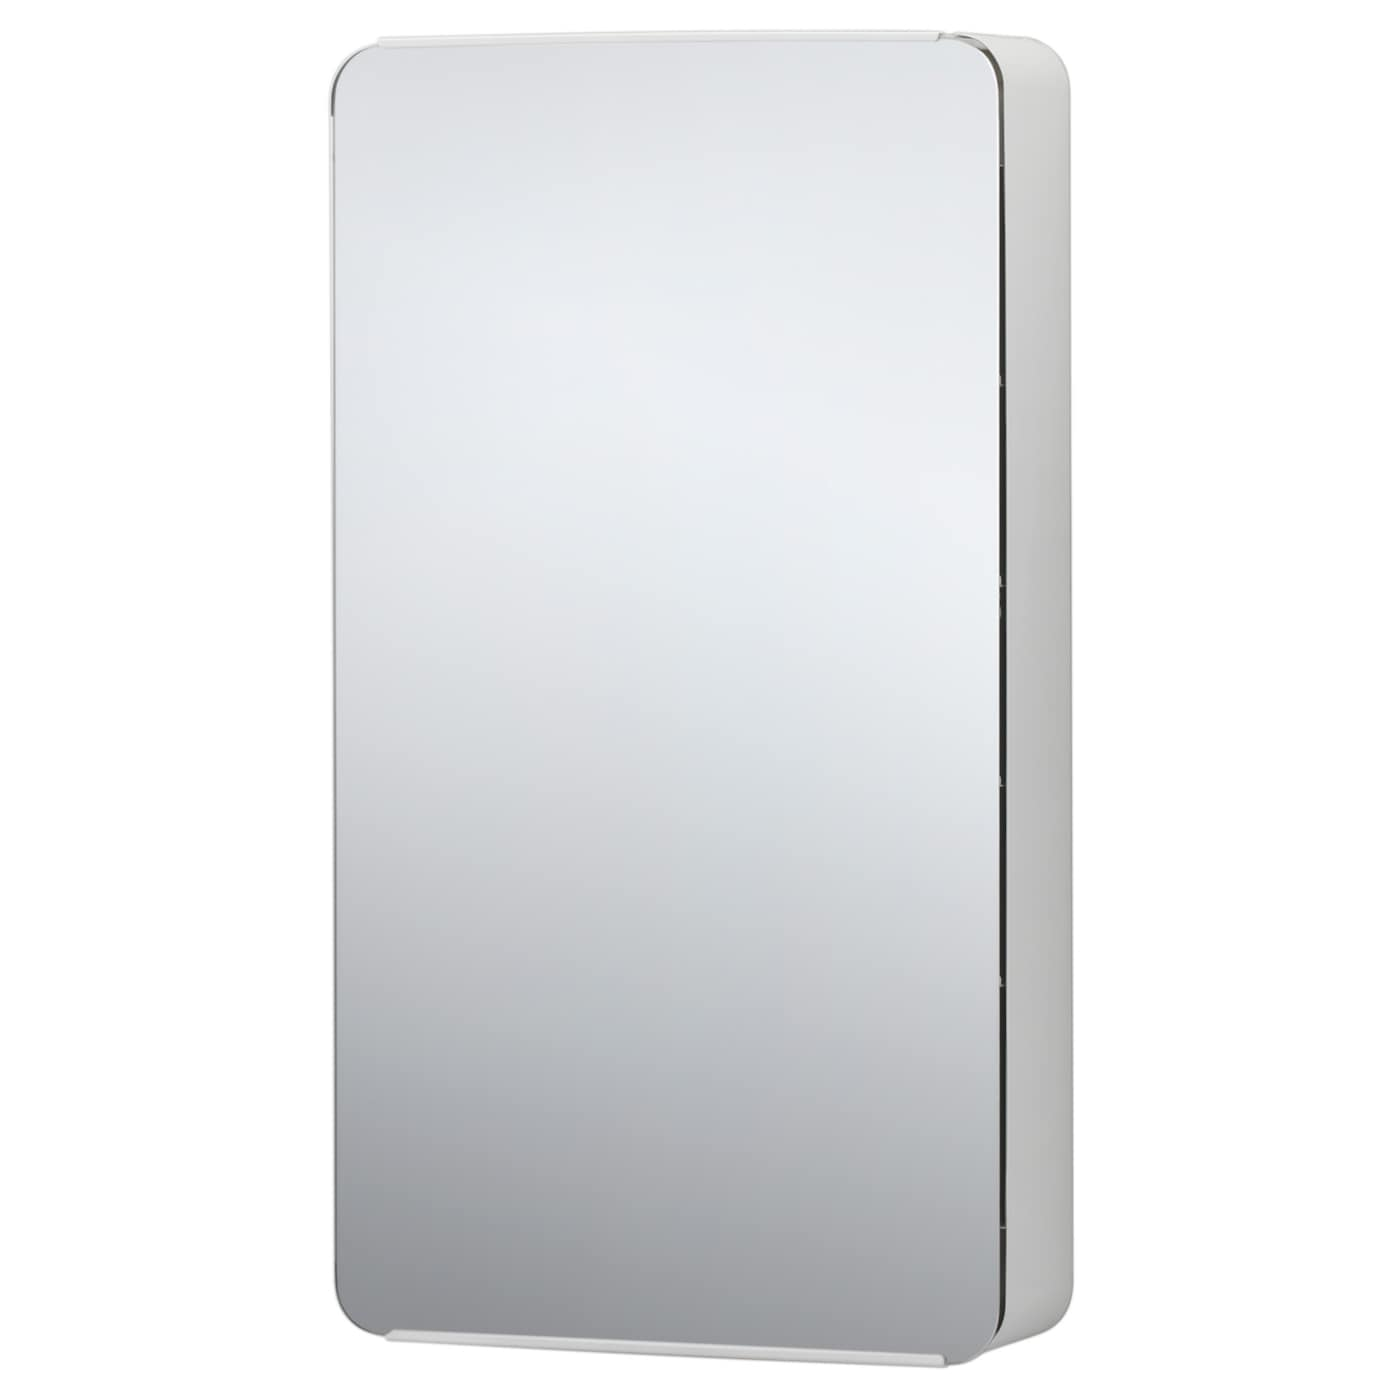 brickan mirror cabinet white 40x73 cm ikea. Black Bedroom Furniture Sets. Home Design Ideas